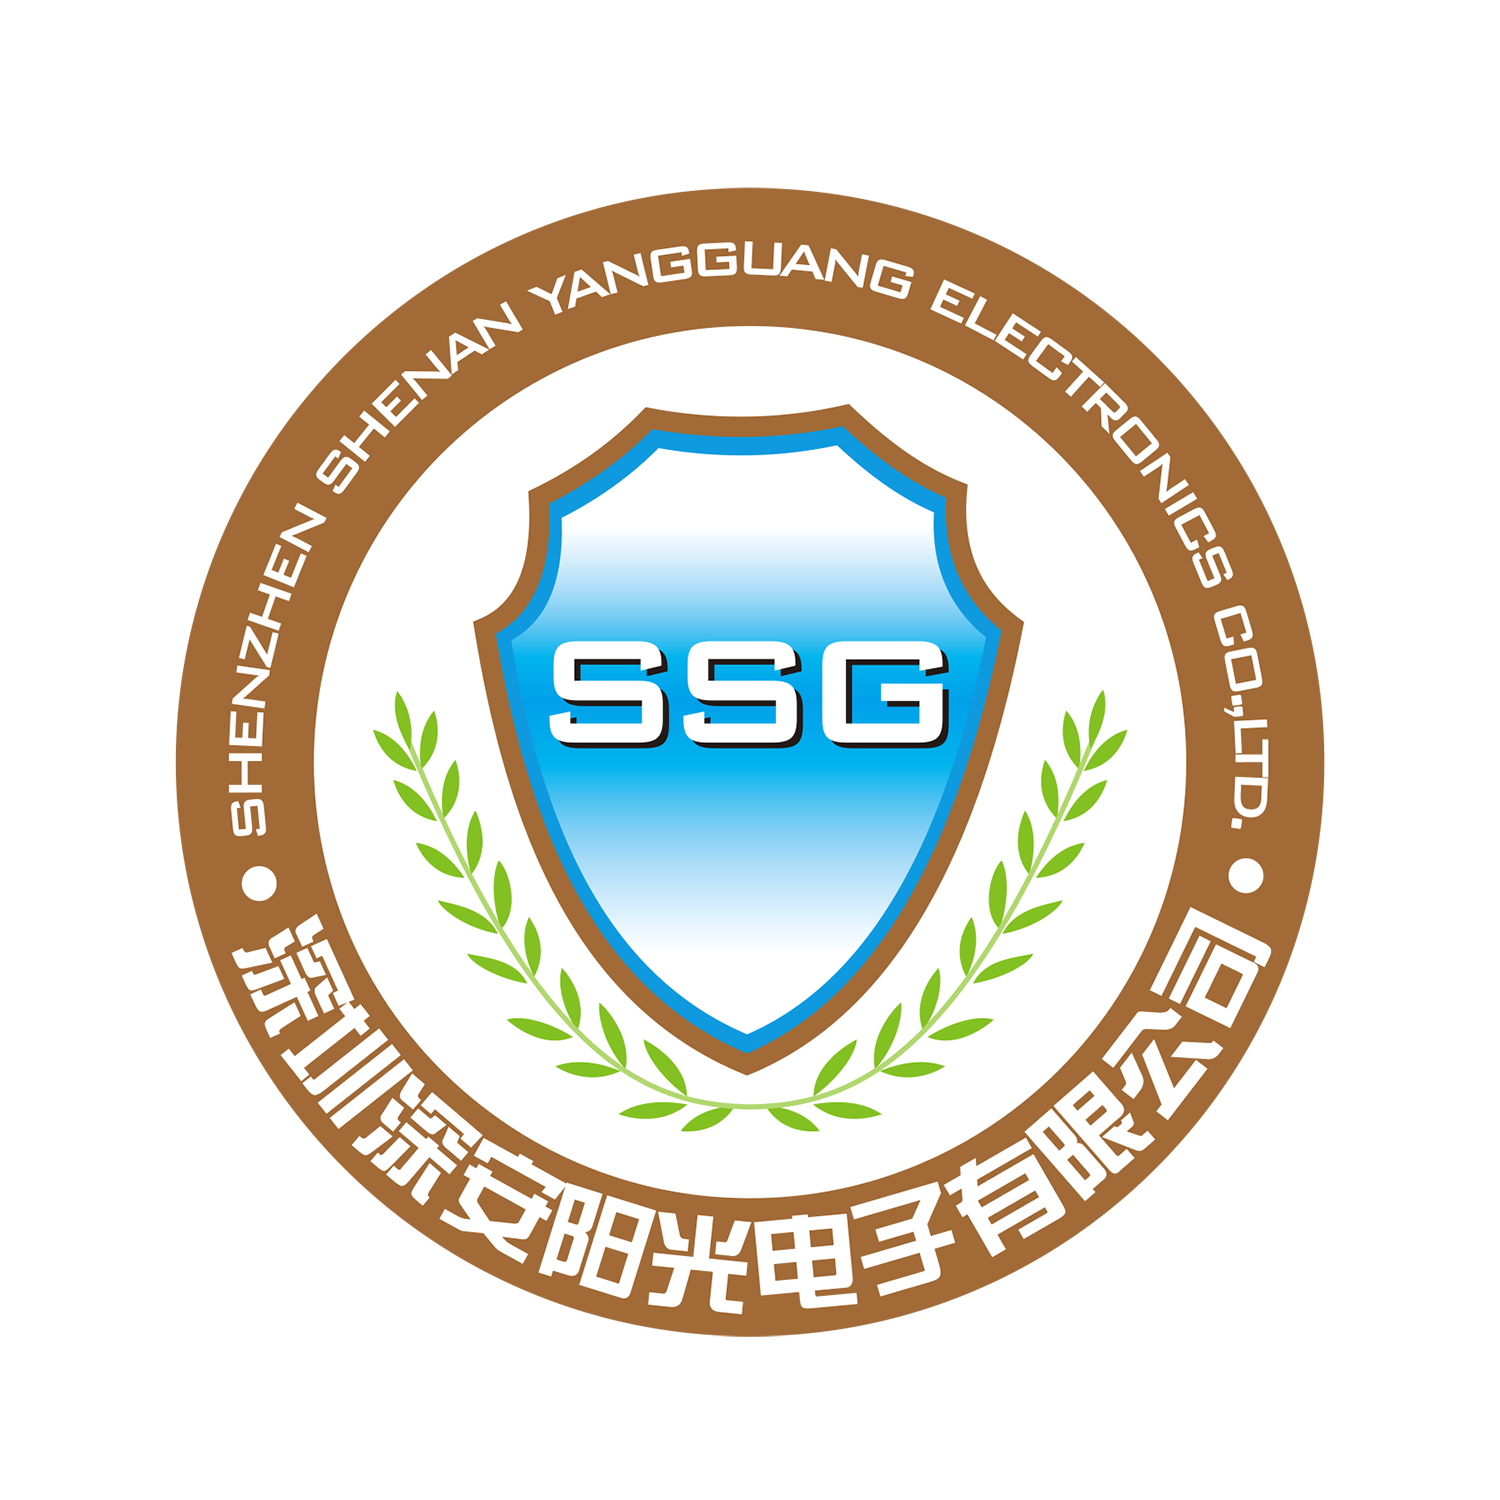 SHENZHEN SHENAN YANGGUANG ELECTRONICS CO., LTD.